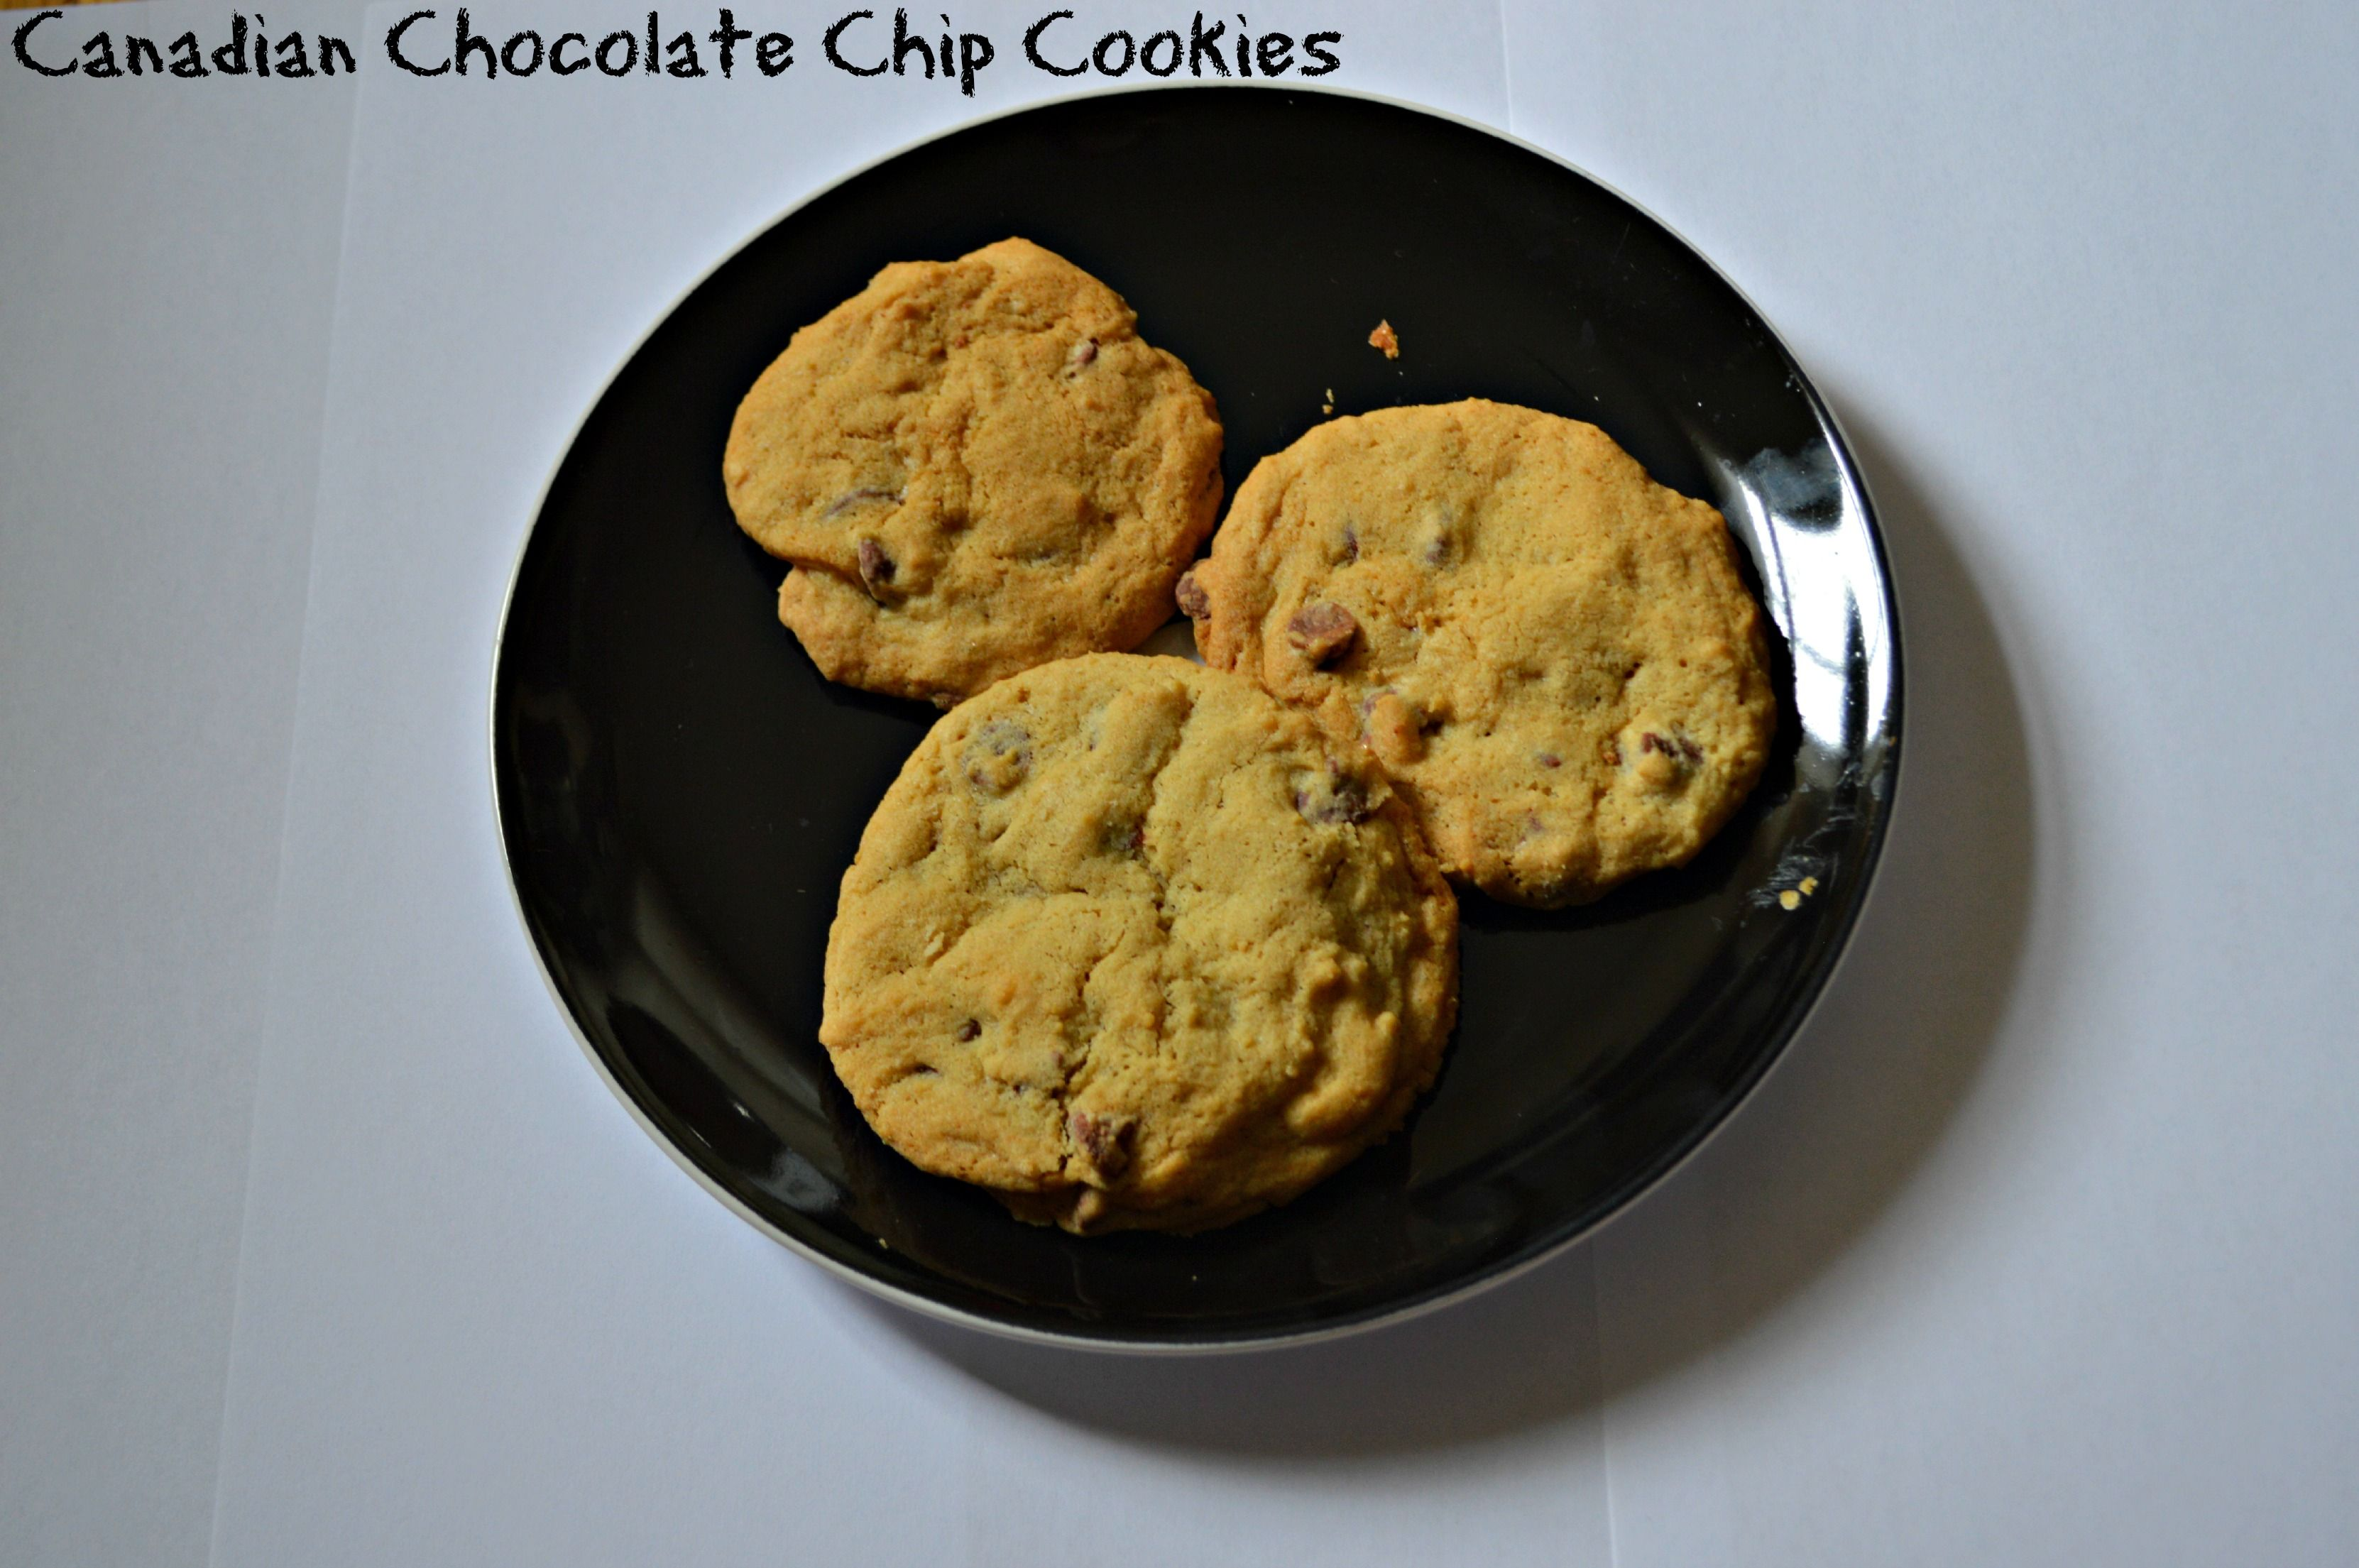 The chocolate chip cookies I made from an @olson_anna recipe to accompany my review of What If - gotta love Canadian desserts!